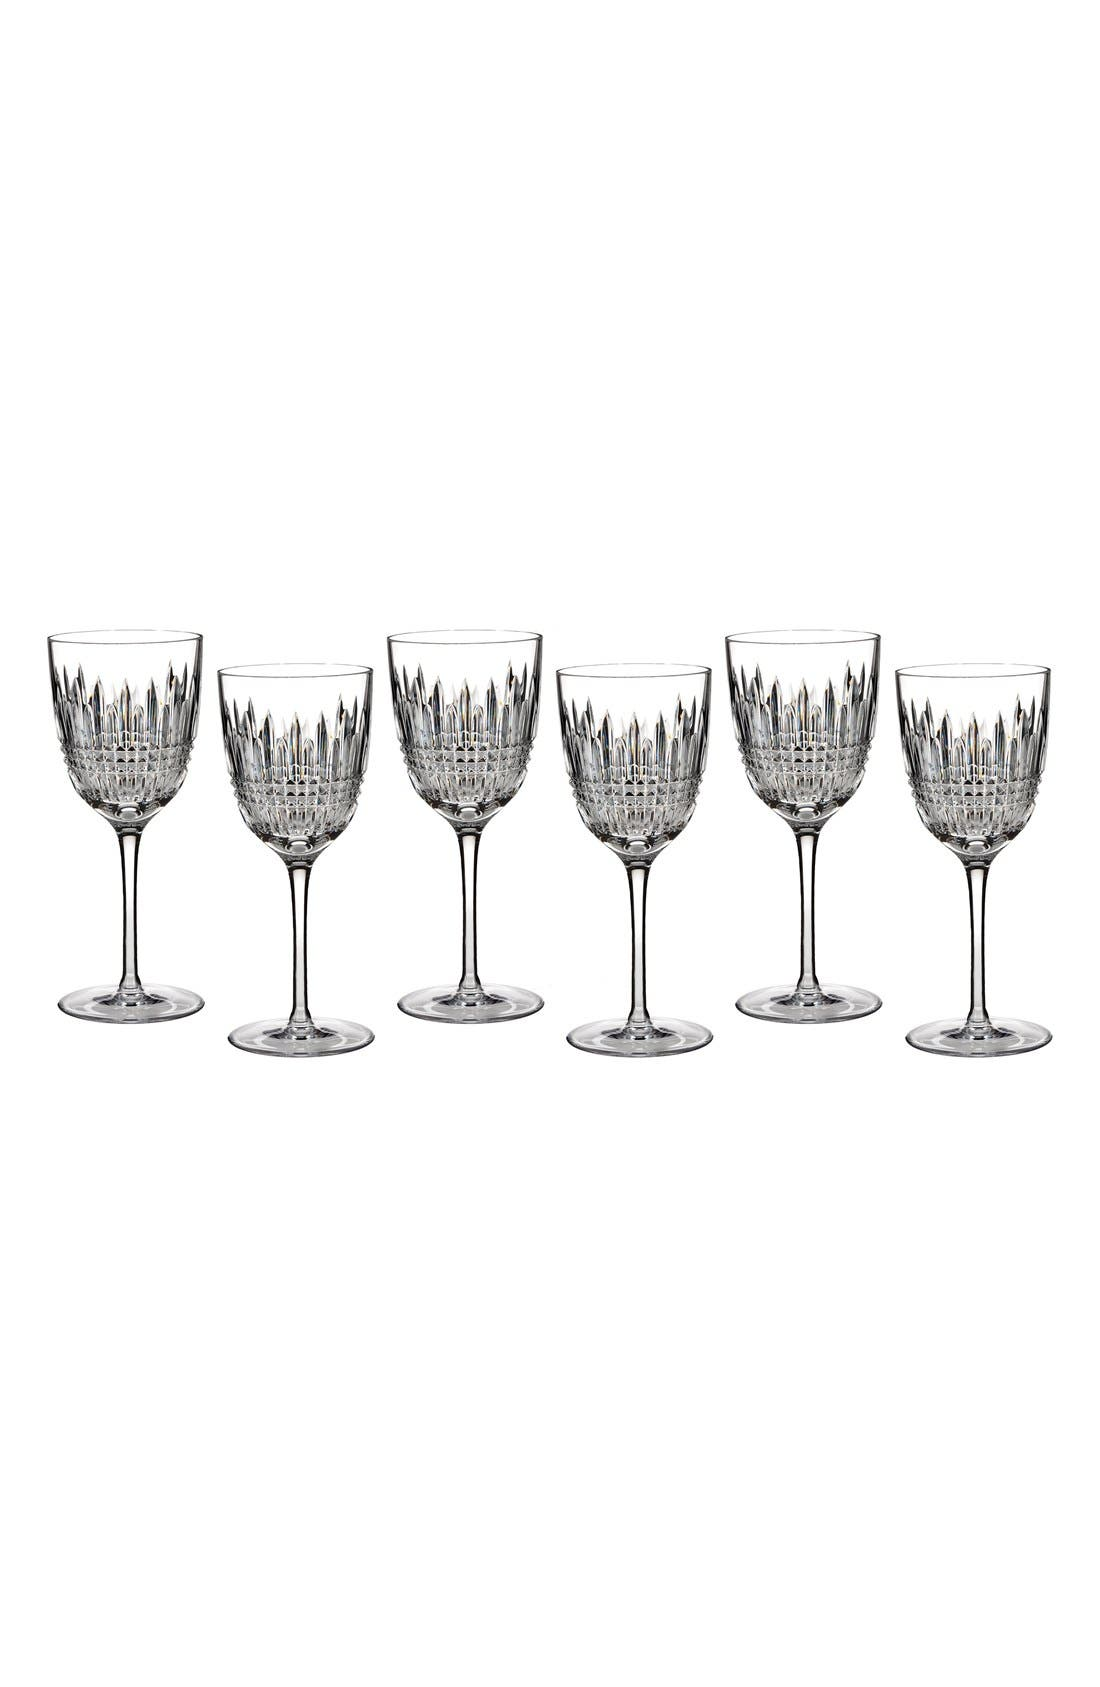 Main Image - Waterford 'Lismore Diamond' Lead Crystal Goblets (Set of 6)